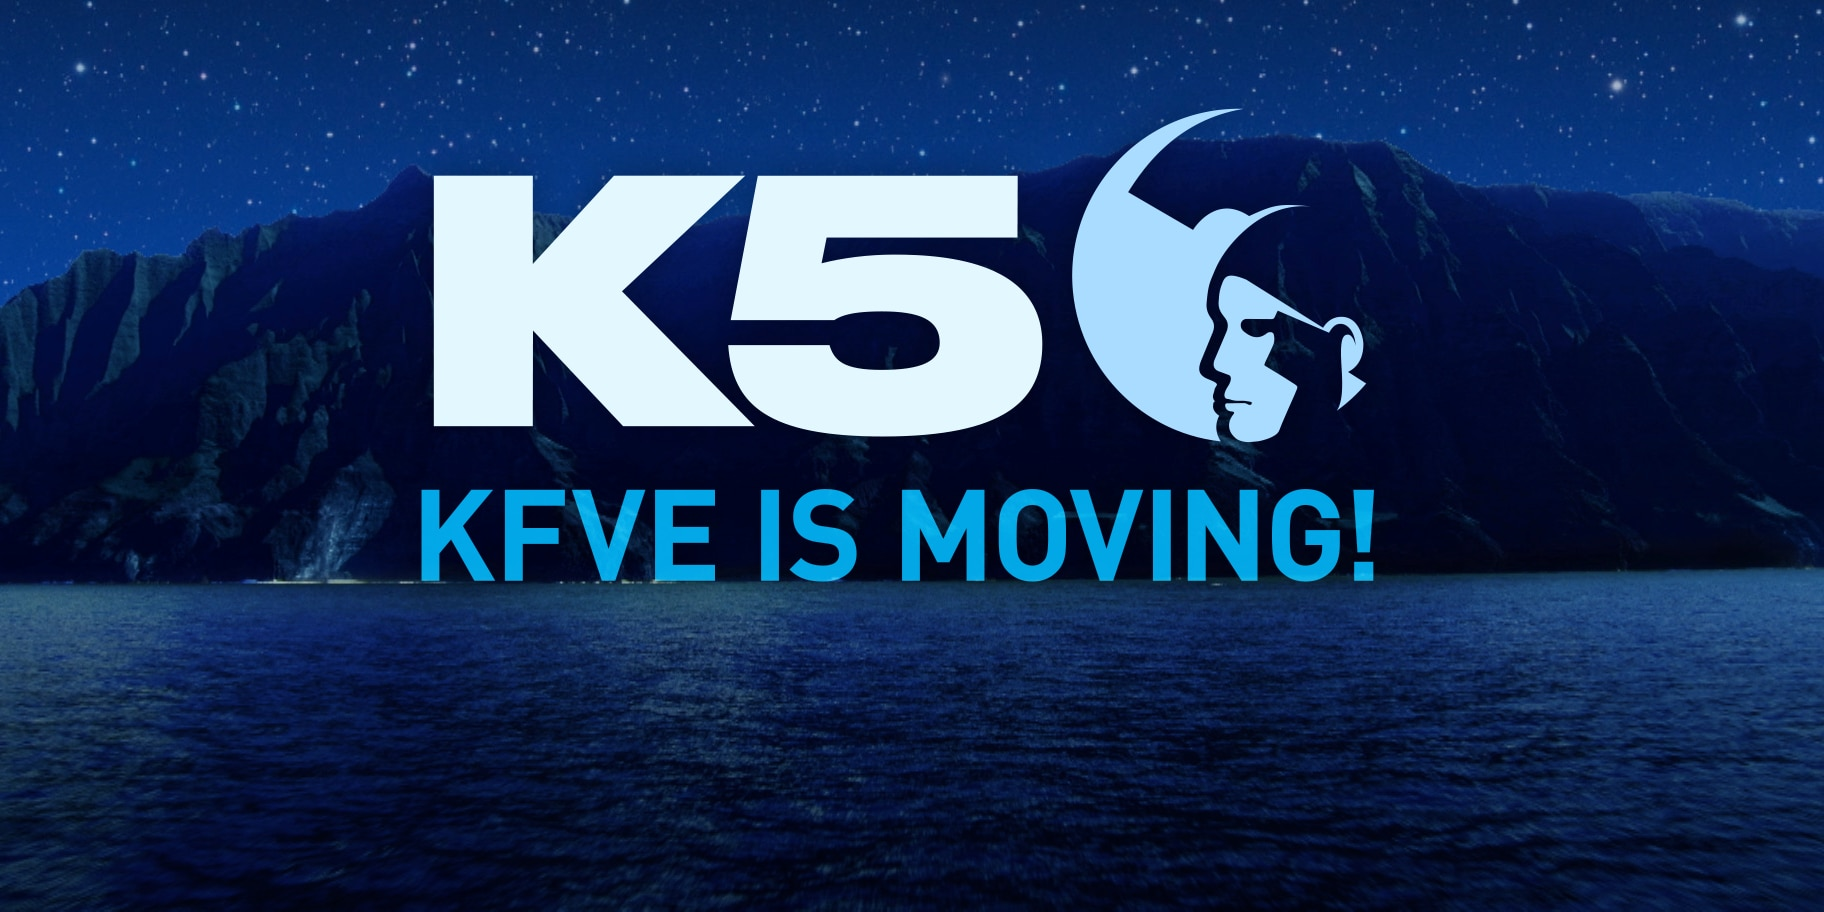 KFVE is moving channels! Here's how to continue watching.